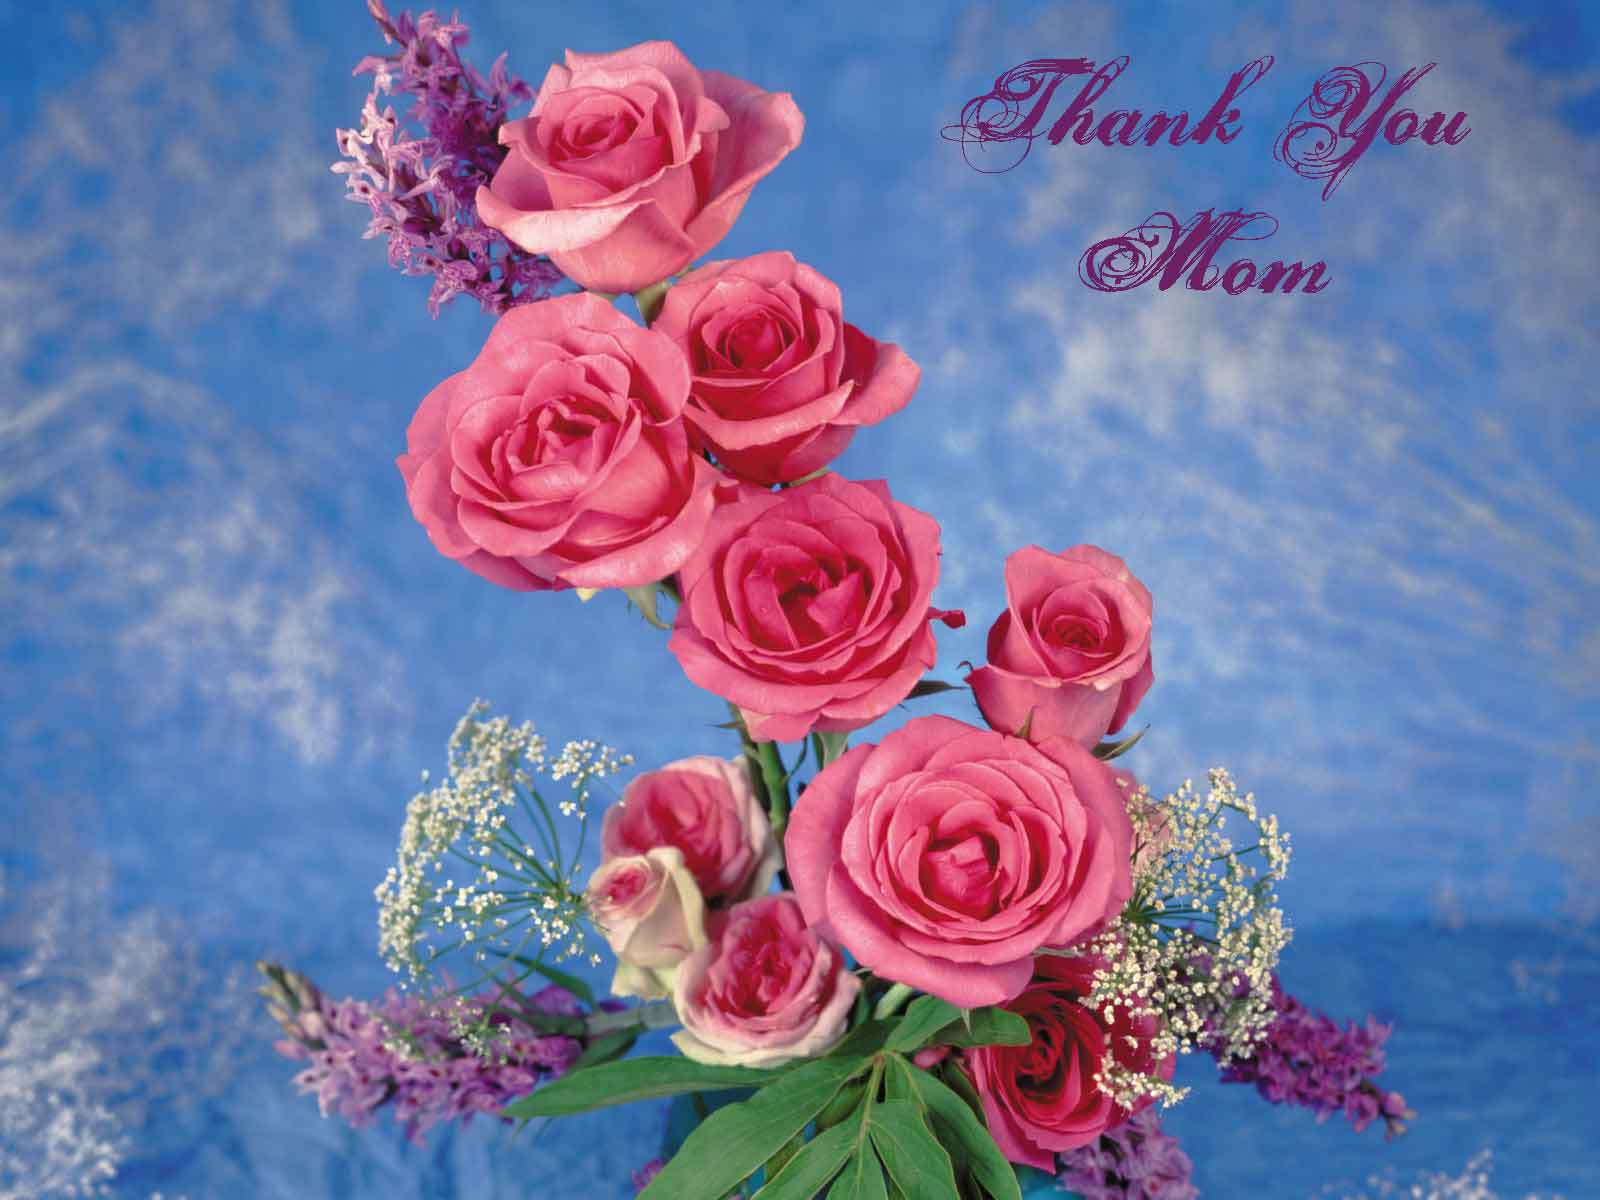 Thank You Mom Mothers Day Wallpapers Cool Christian Wallpapers 1600x1200